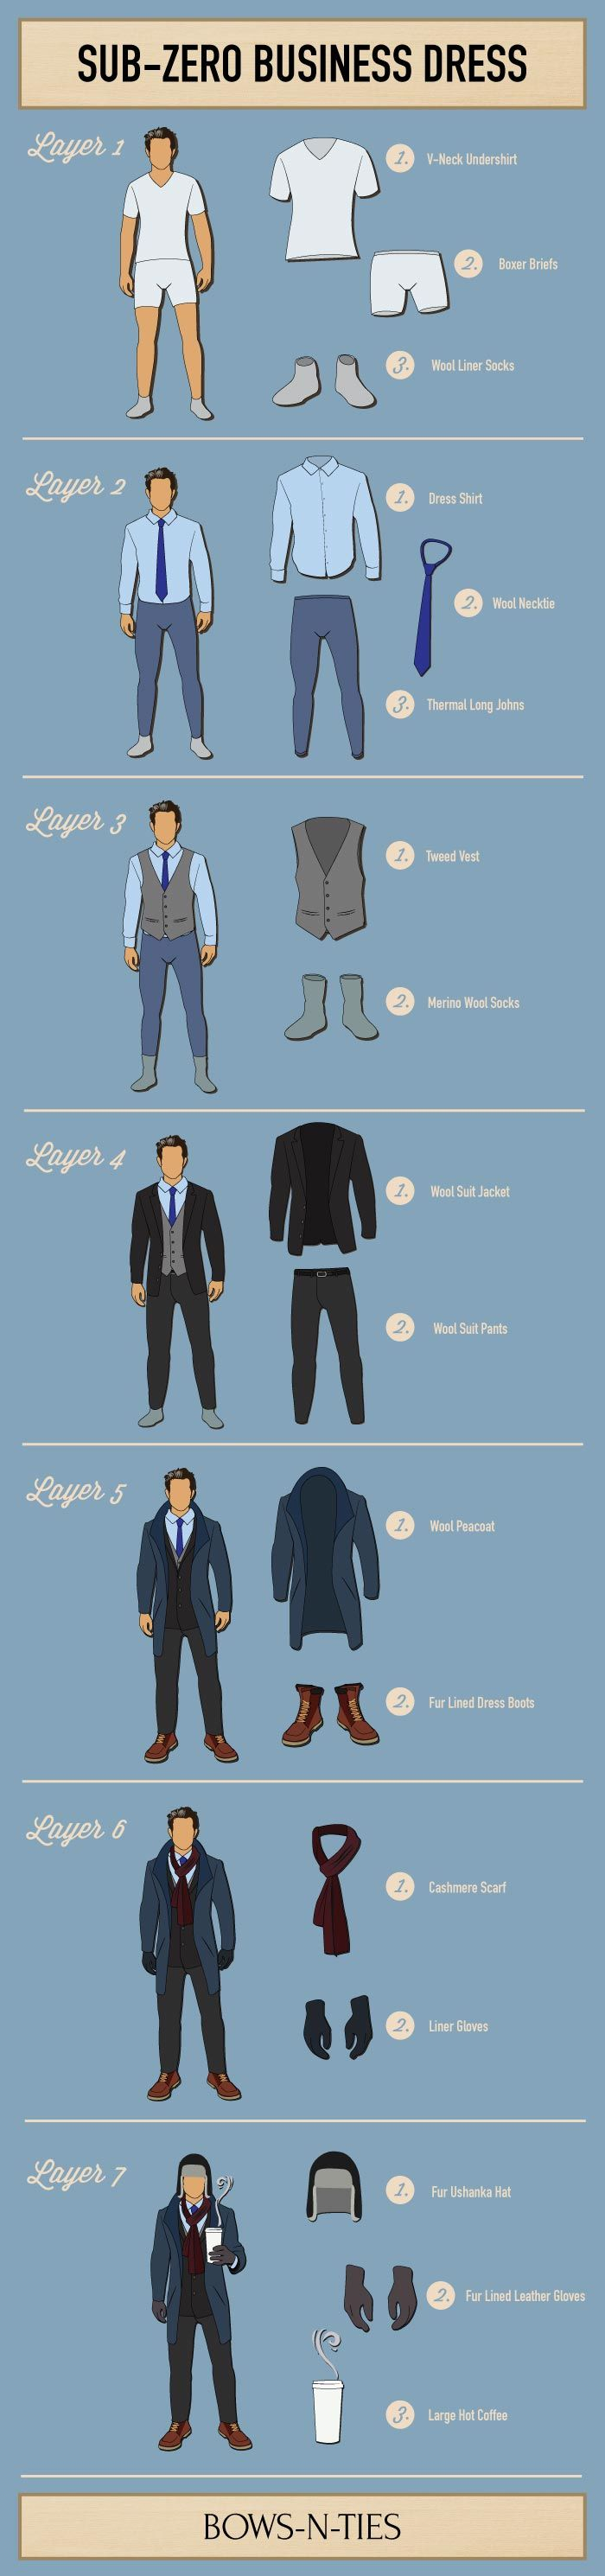 Snowmageddon. Snowpocalypse. Snowzilla! The handy guide to Sub-Zero Business Dress to fight record breaking winters.